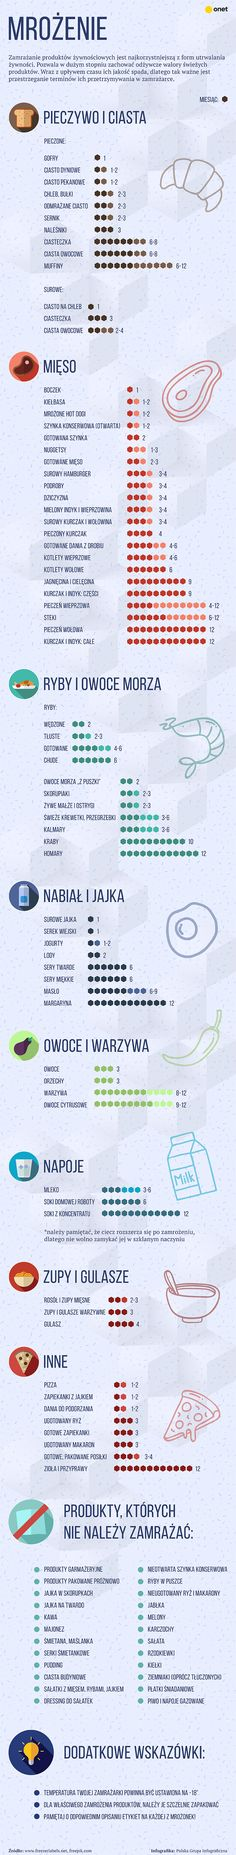 Jak długo można przechowywać mrożone produkty? Sprawdź! [INFOGRAFIKA] - Kobieta Cool Restaurant, Little Kitchen, Polish Recipes, Kitchen Hacks, Good Advice, Tasty Dishes, Cooking Tips, Healthy Lifestyle, Diy And Crafts